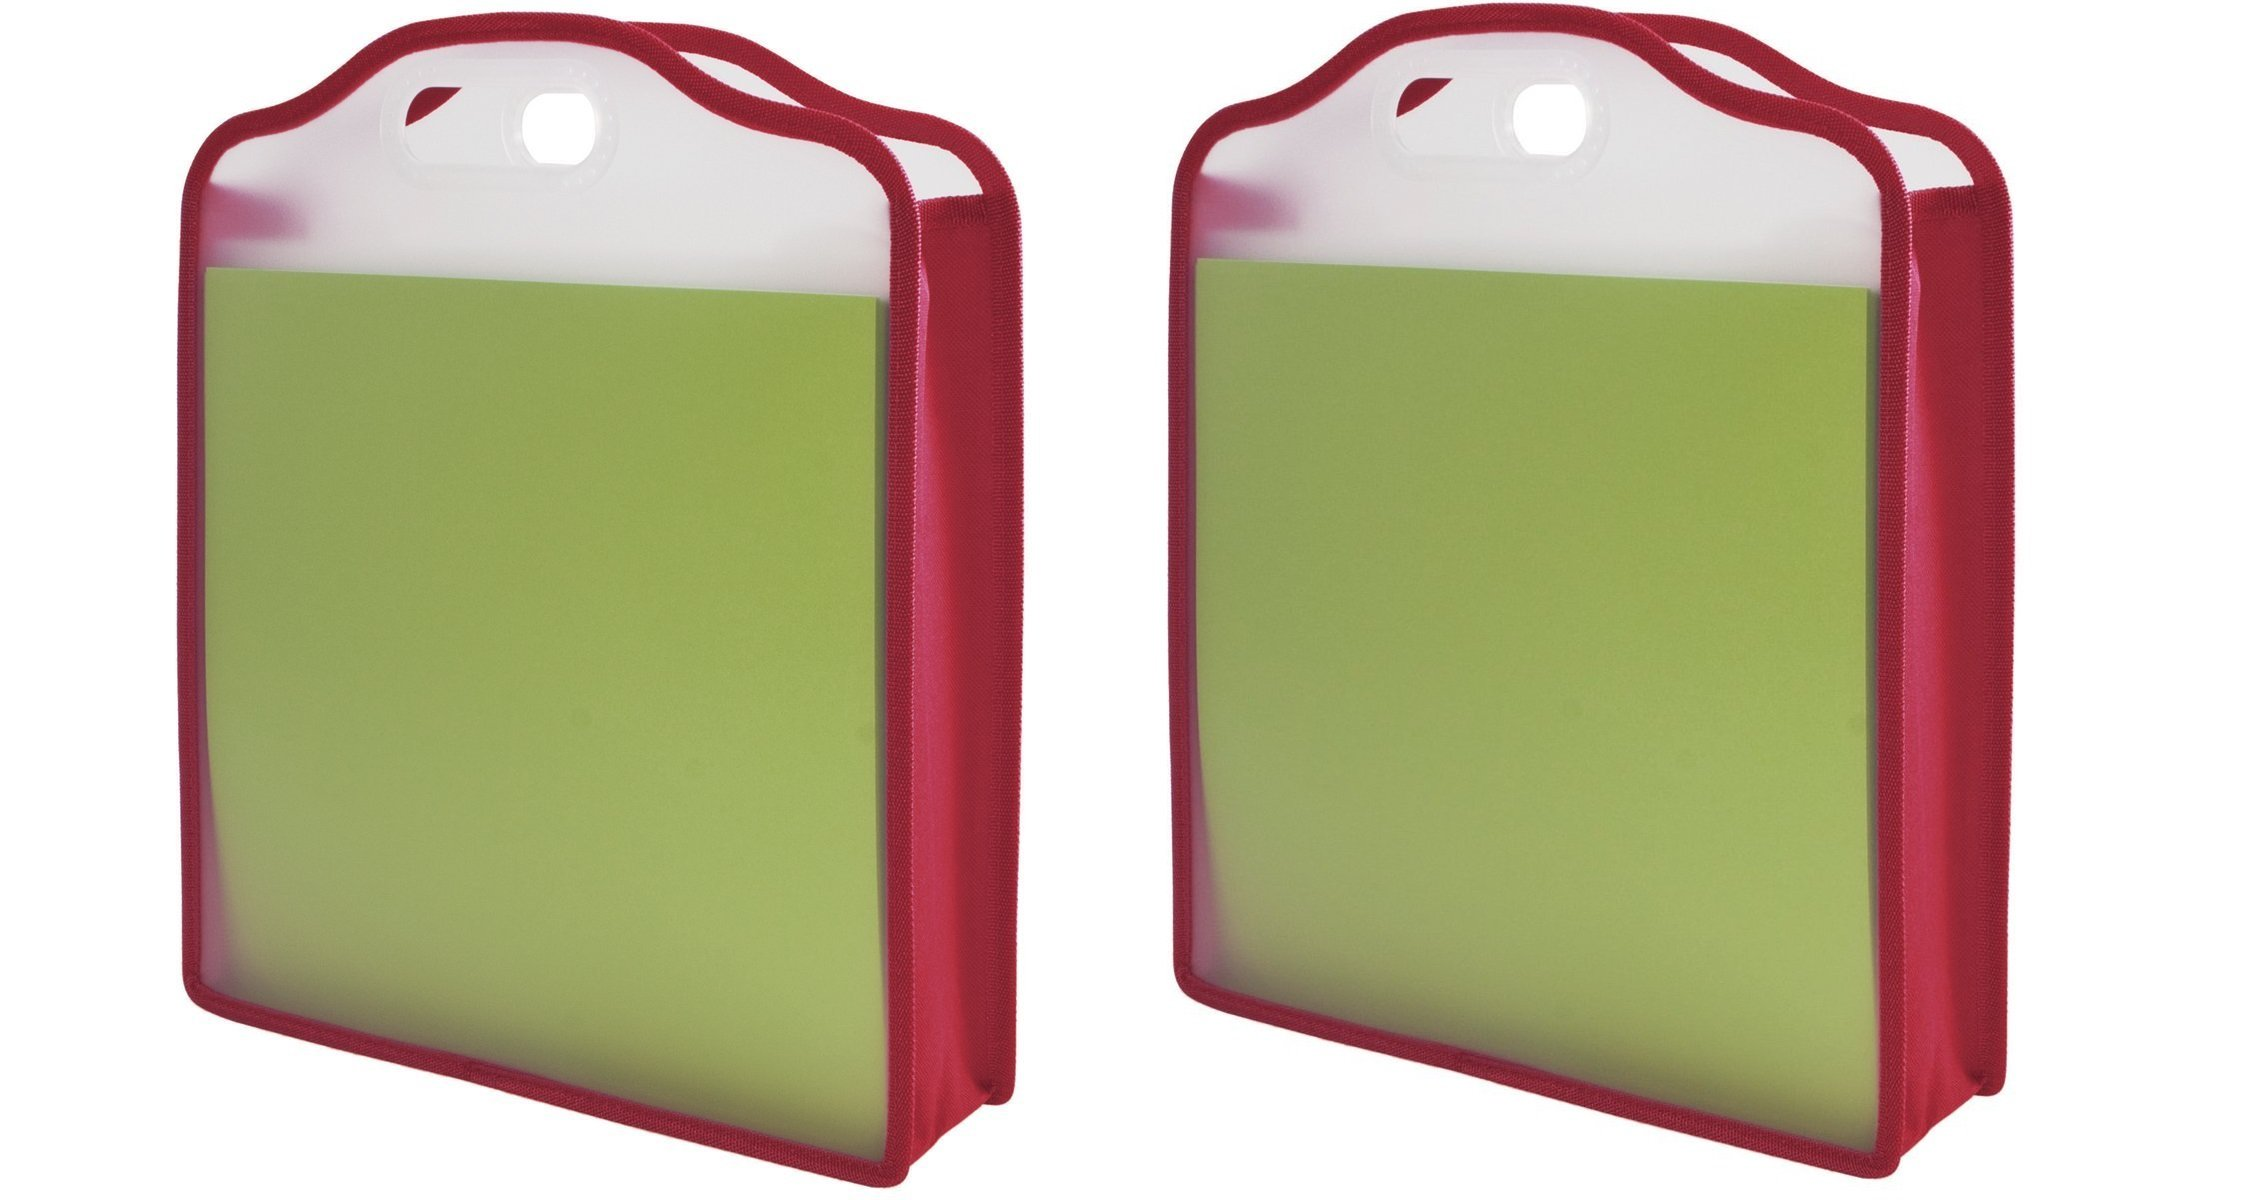 Storage Studios Expanding Paper Folio for 12 x 12 Sheets, 15.75 x 13 x 3 Inches, Color May Vary, CH93391 (2 Pack)